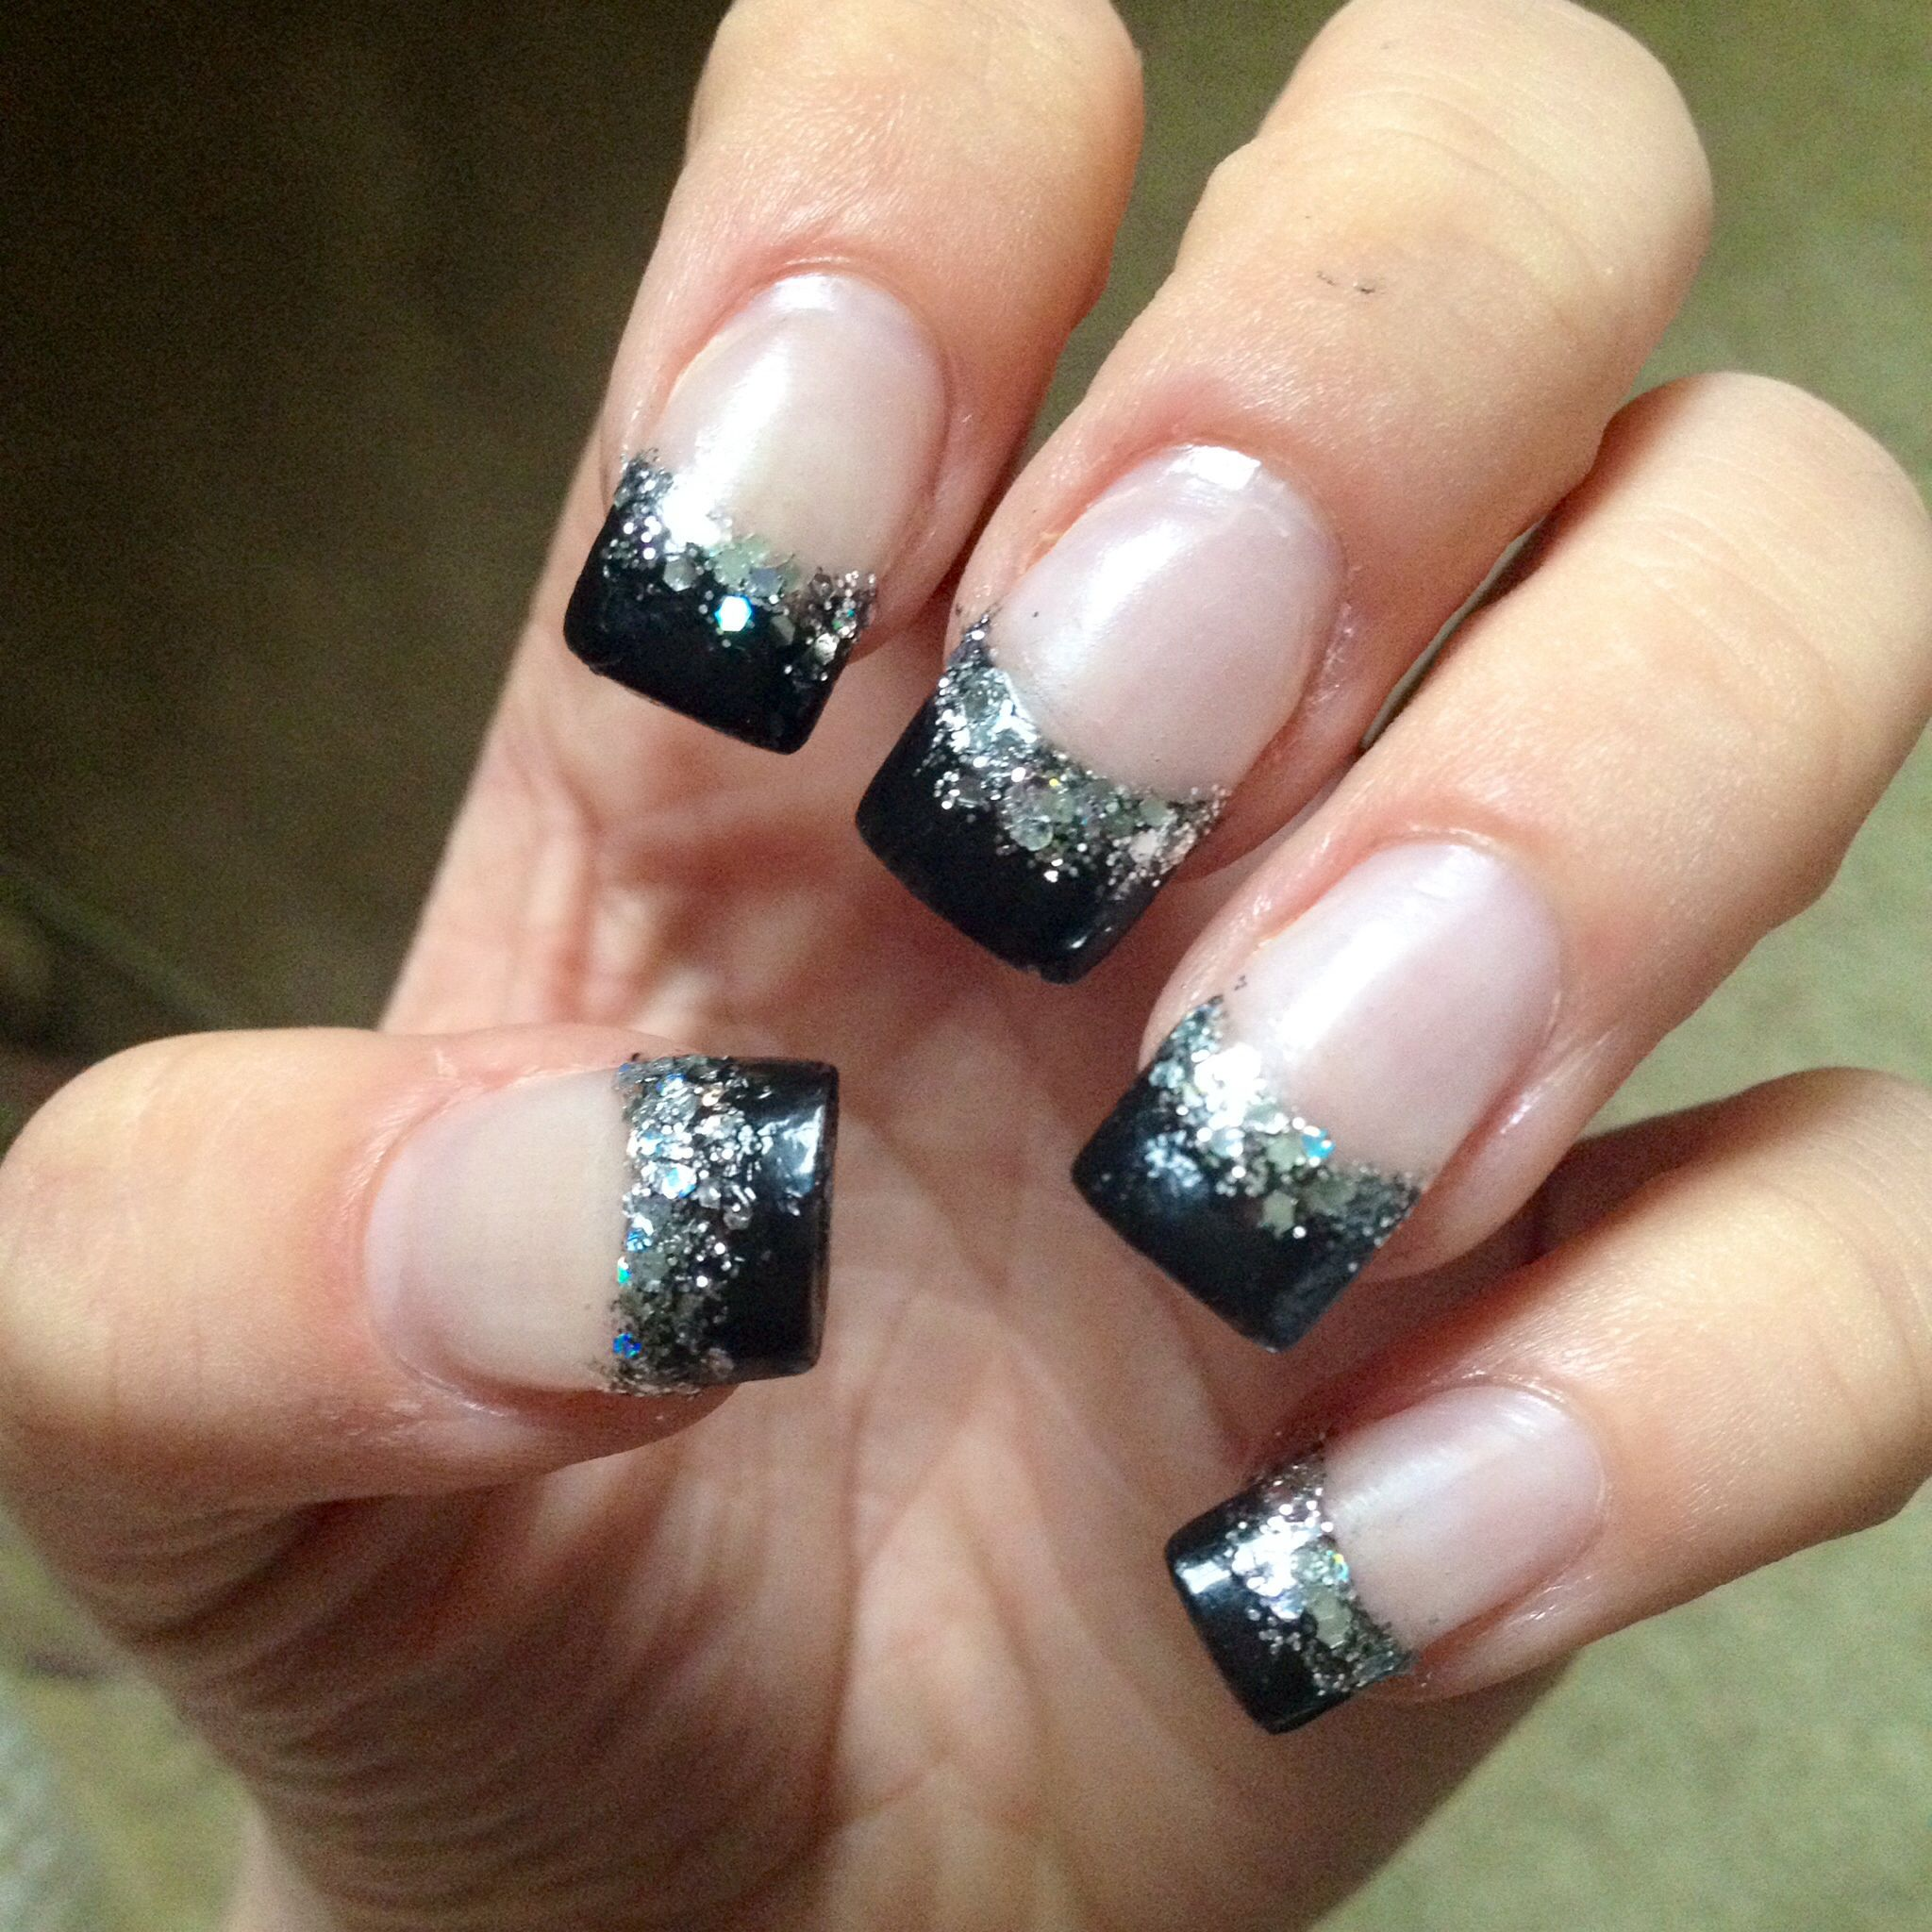 Black acrylic nail tip with silver. Acrylic nail tip design | Bath ...